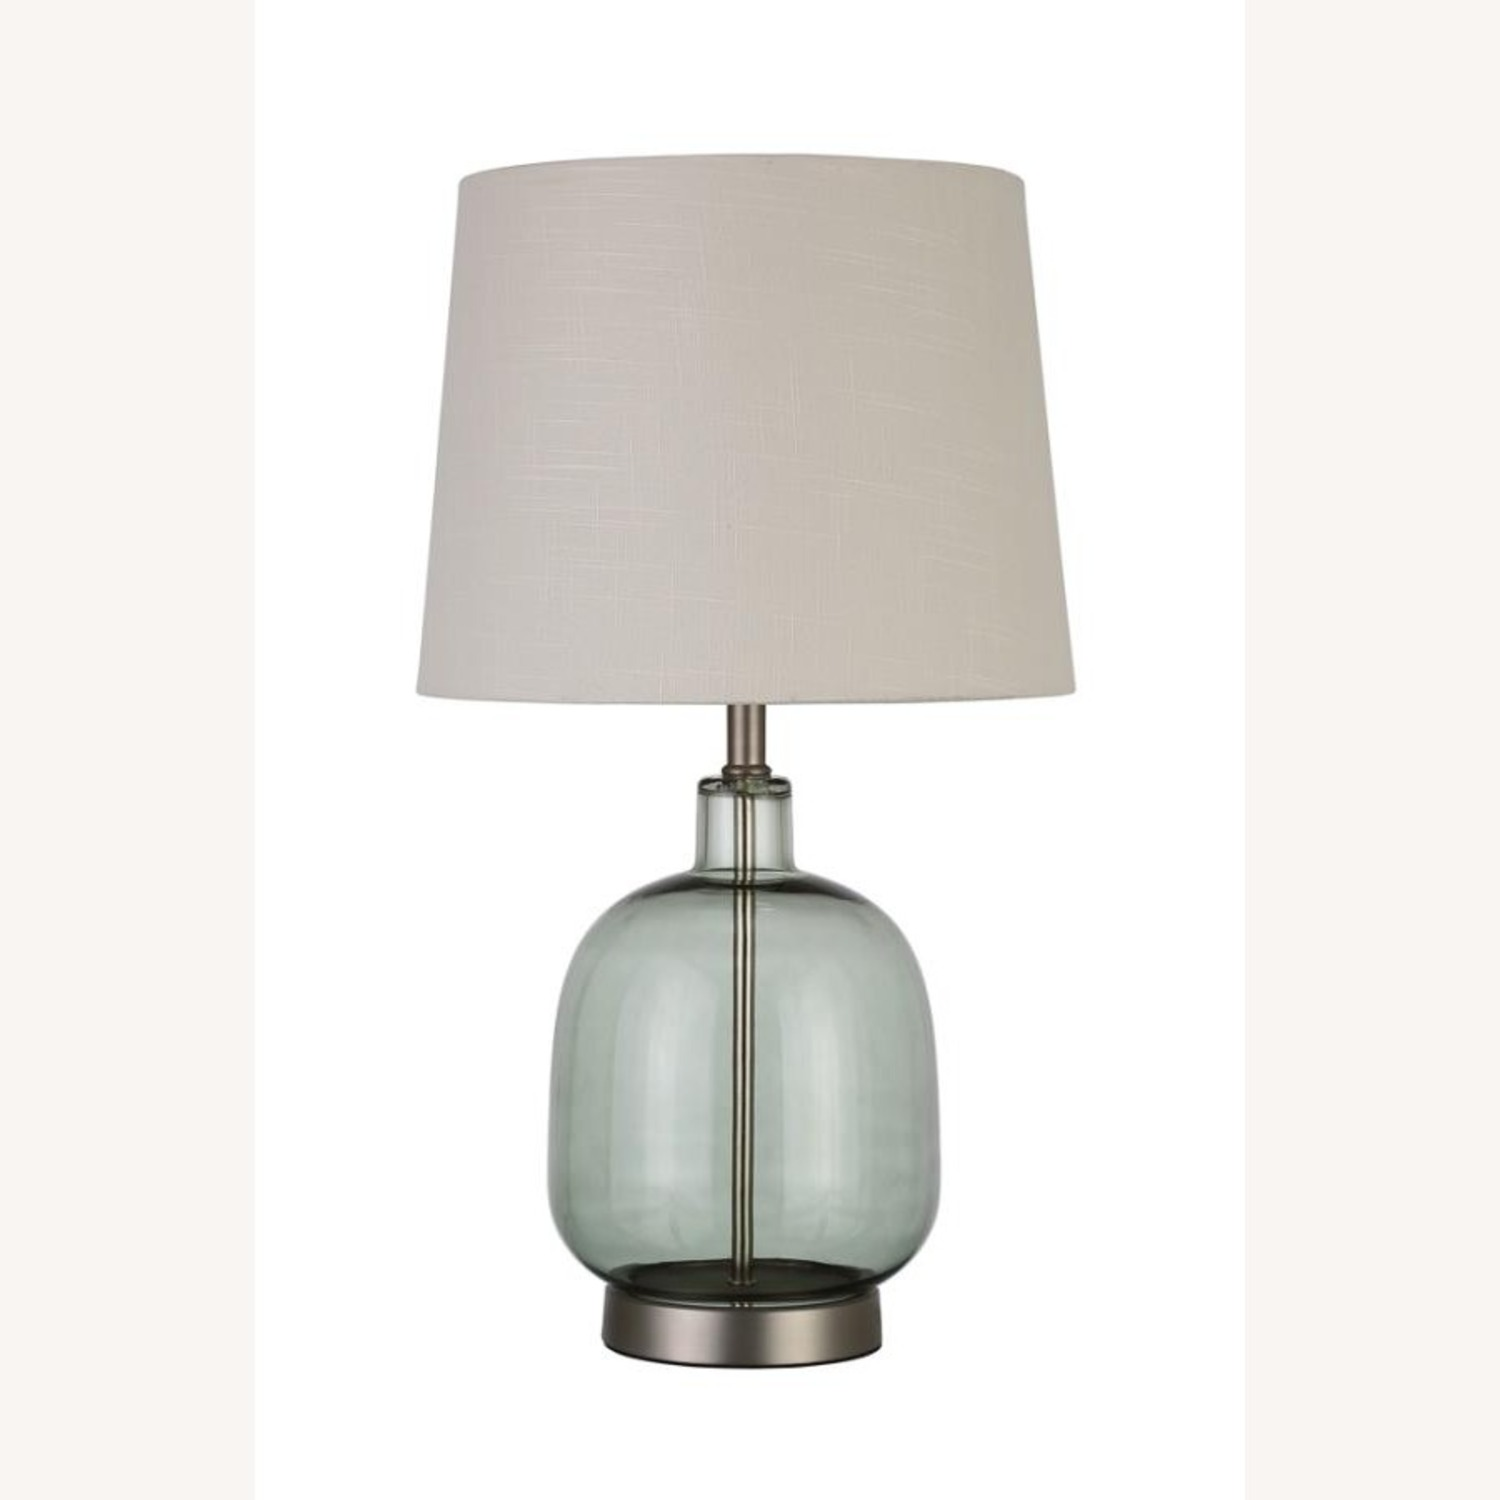 Table Lamp In Transparent Green Glass Body - image-2